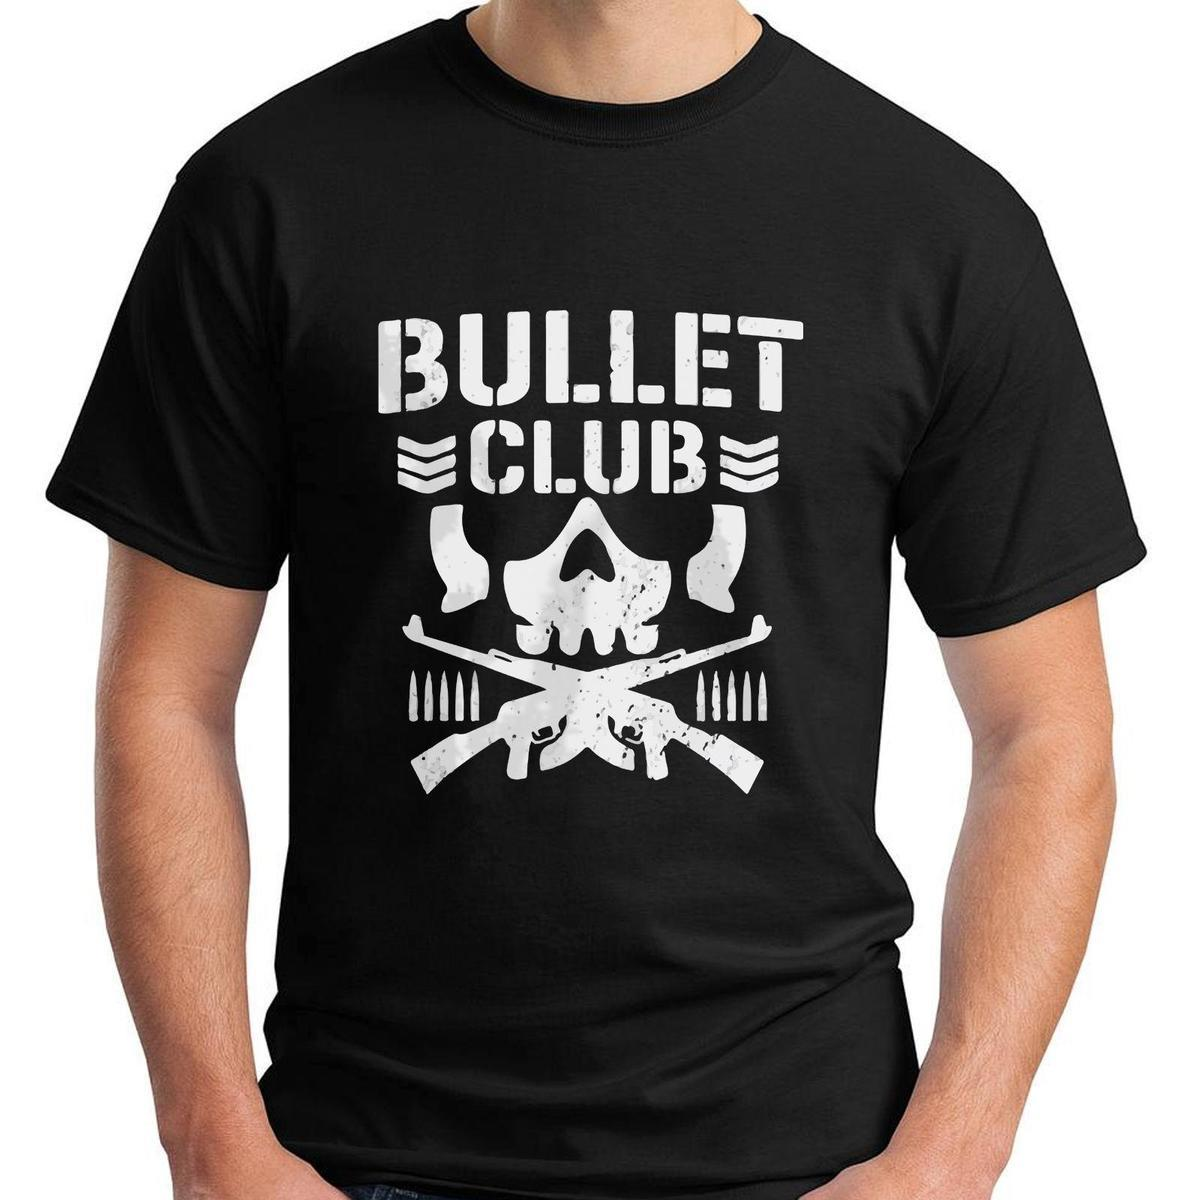 new bullet club logo short sleeve black men s logo men women t